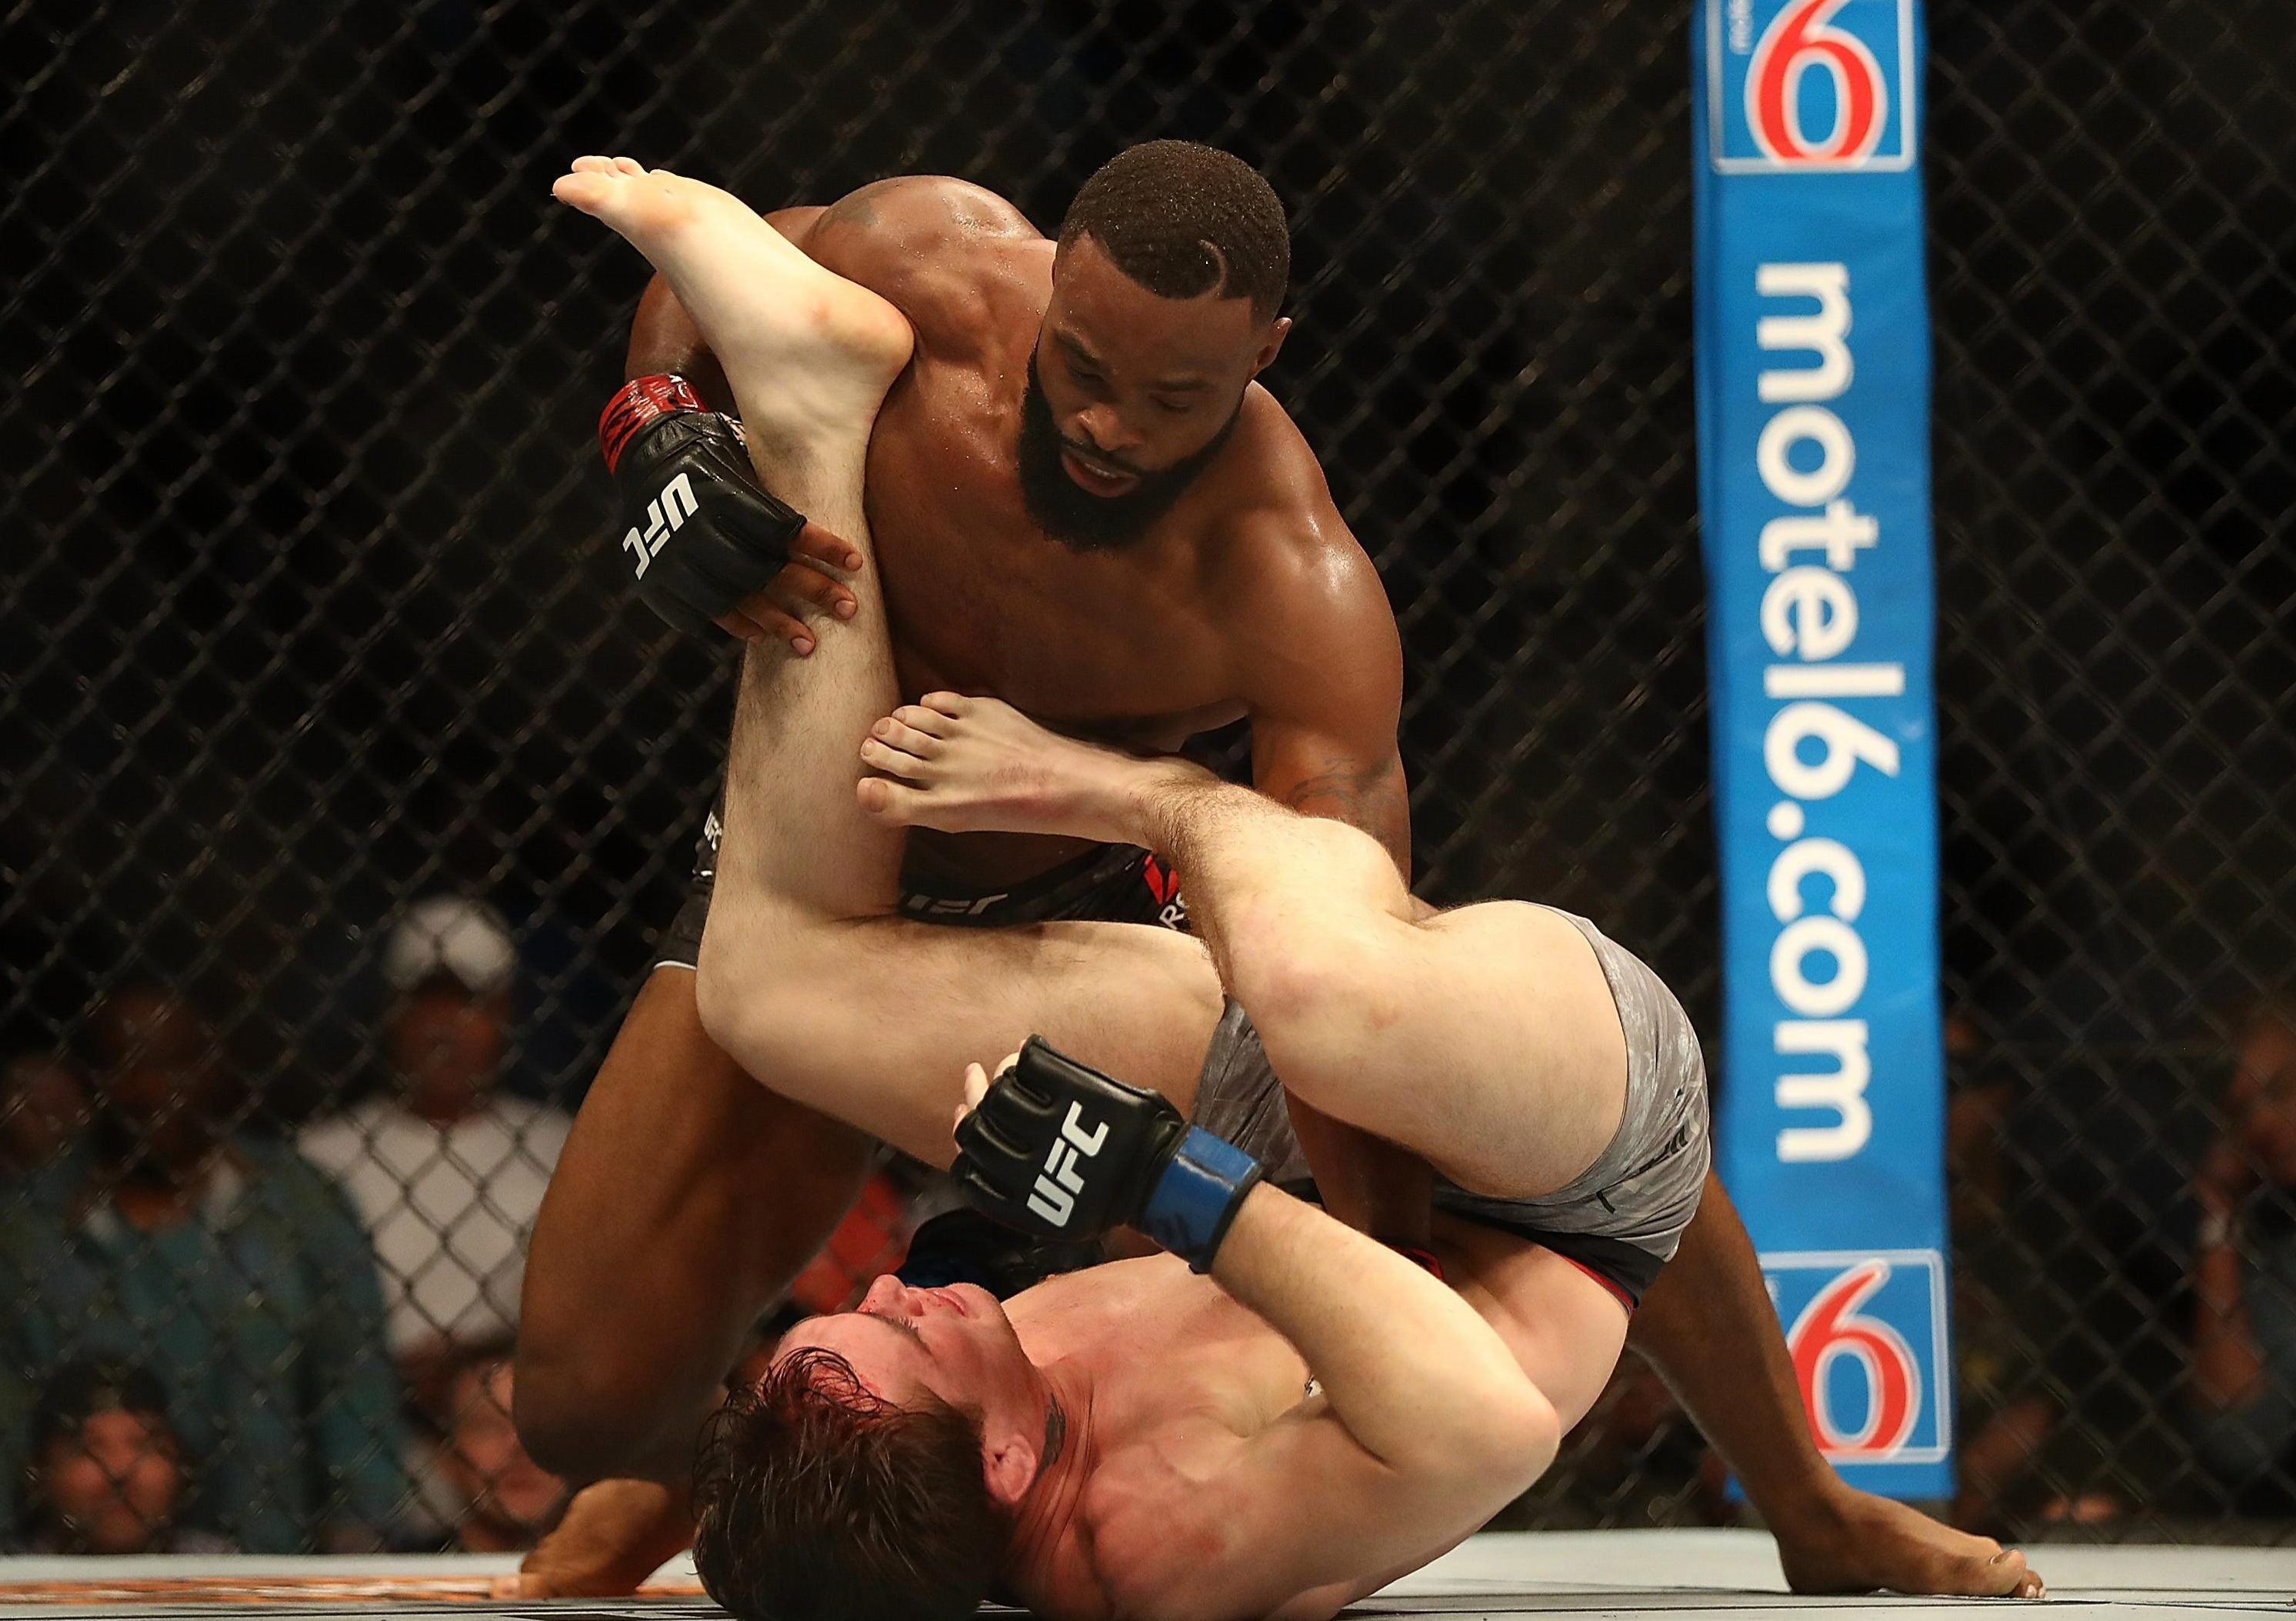 Woodley knocked Till down with a powerful right hand and won with 41 seconds remaining in the second round